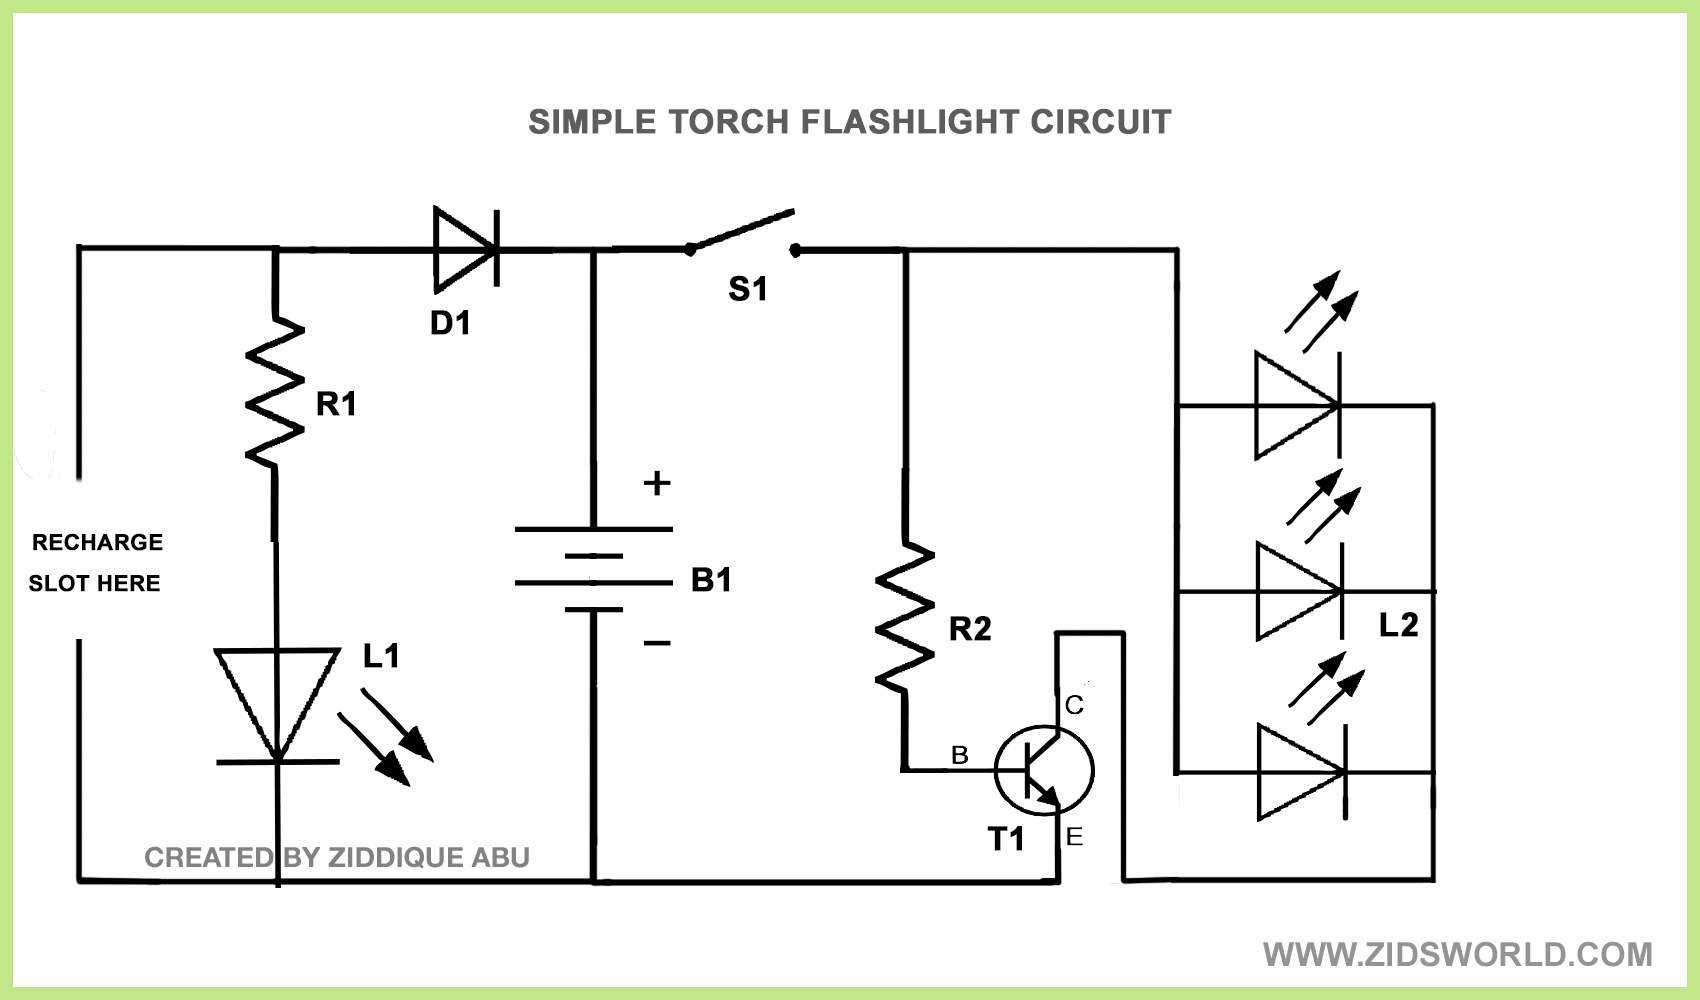 LEDTORCH212 home made bright white led torch flashlight circuit diagram diy